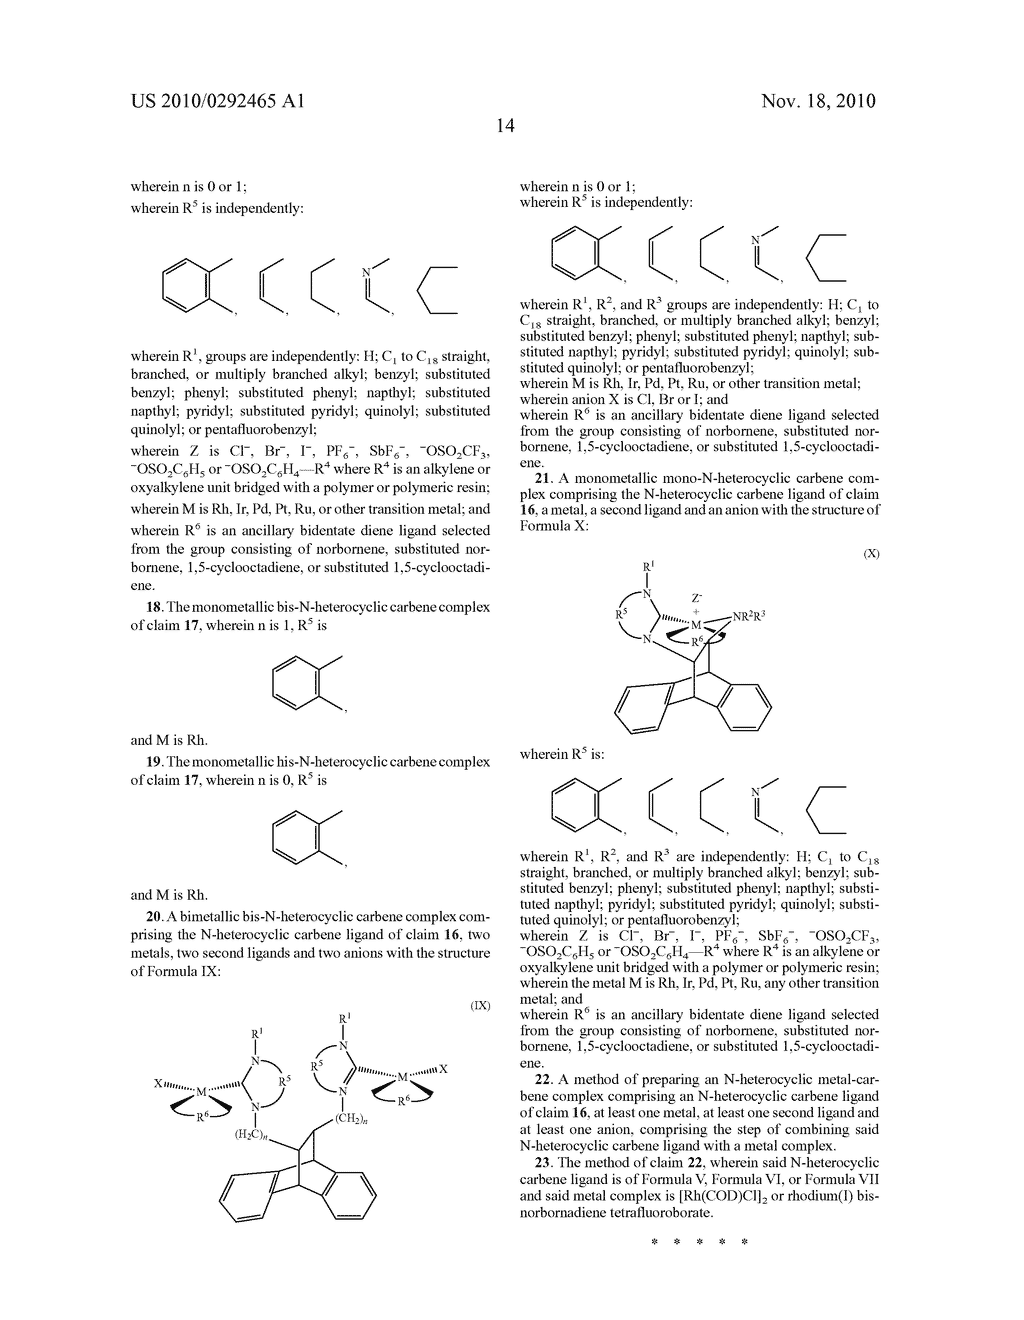 CATALYSTS CONTAINING N-HETEROCYCLIC CARBENES FOR ENANTIOSELECTIVE SYNTHESIS - diagram, schematic, and image 19